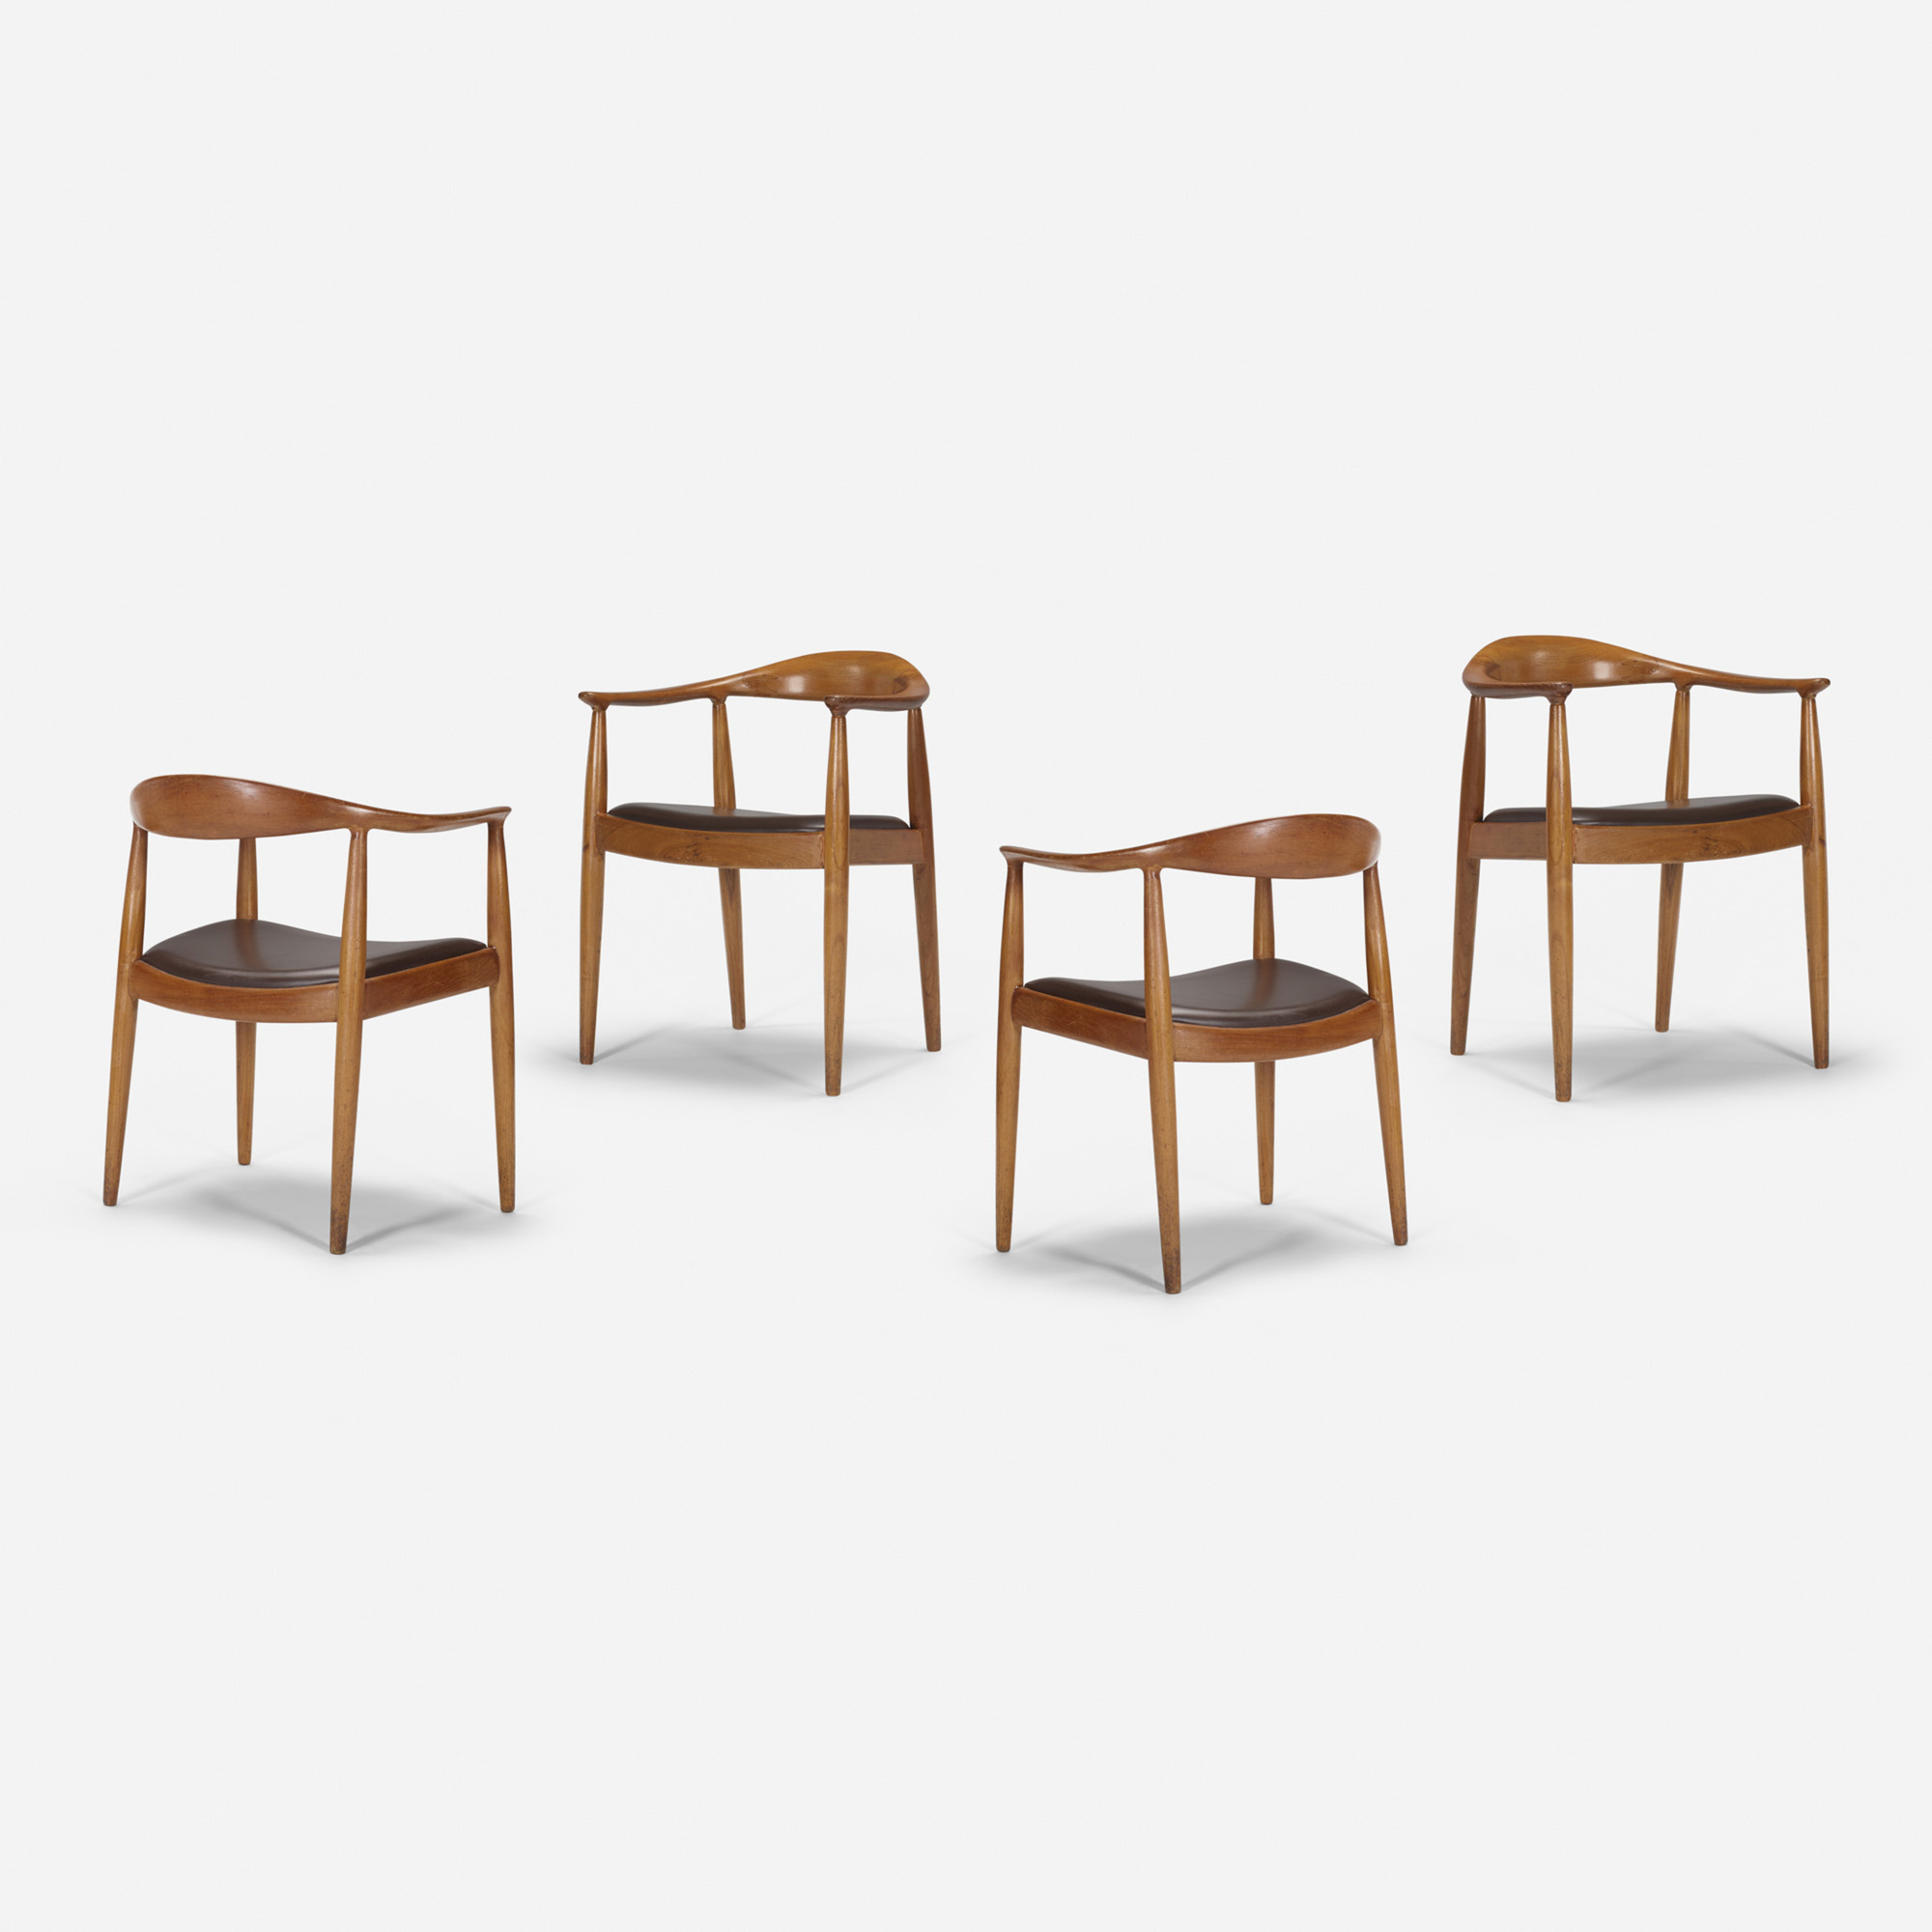 403: After Hans J. Wegner / The Chairs from the mezzanine of the Grill Room, set of four (1 of 1)